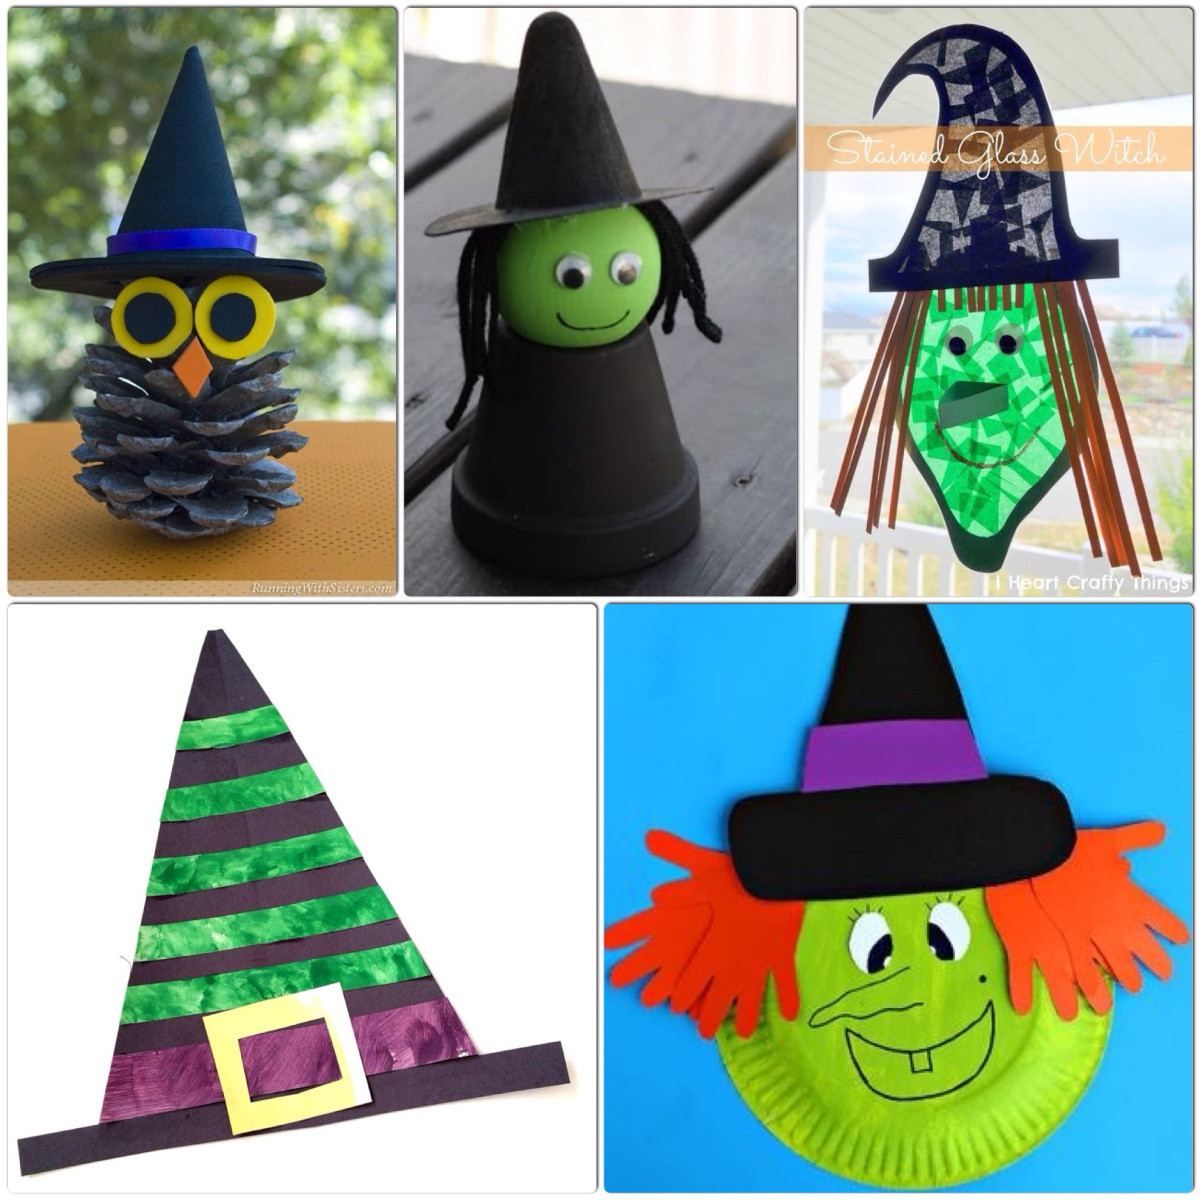 Best ideas about Crafts Fir Kids . Save or Pin Witch Crafts for Kids – More Halloween Fun Now.